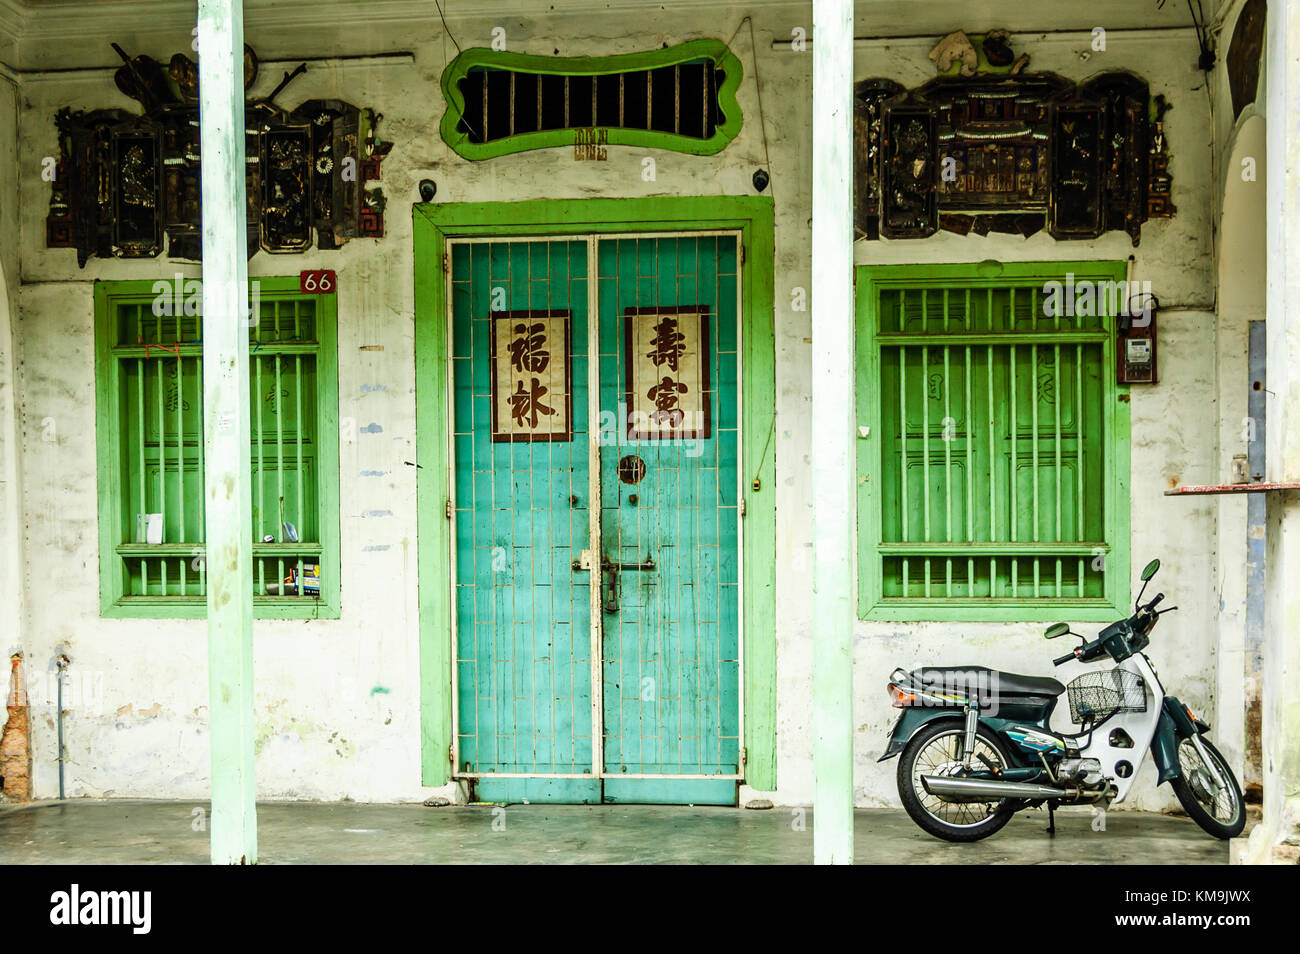 Penang, Malaysia - September 4, 2013: Old painted Chinese shophouse facade in historical George Town - Stock Image